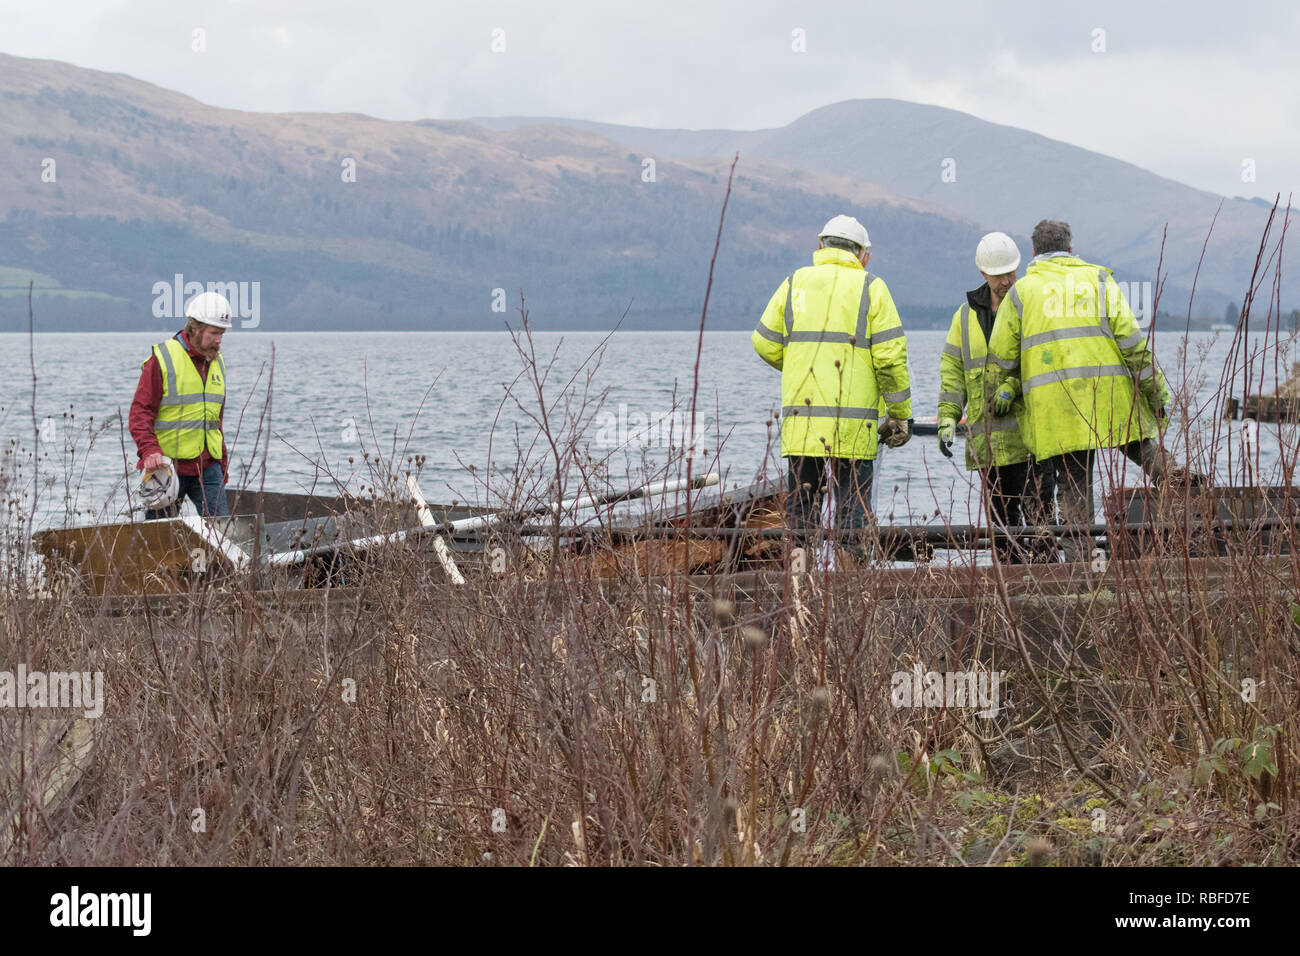 Balloch, Loch Lomond, Scotland, UK. 10th Jan, 2018. The Maid of the Loch has broken free as she was being hauled from Loch Lomond. Minutes after the incident workers survey the broken carriage which appeared to break as she was being hauled up the slipway. The ship fell backwards down the slipway with workers scattering out of the way just in time. Credit: Kay Roxby/Alamy Live News - Stock Image